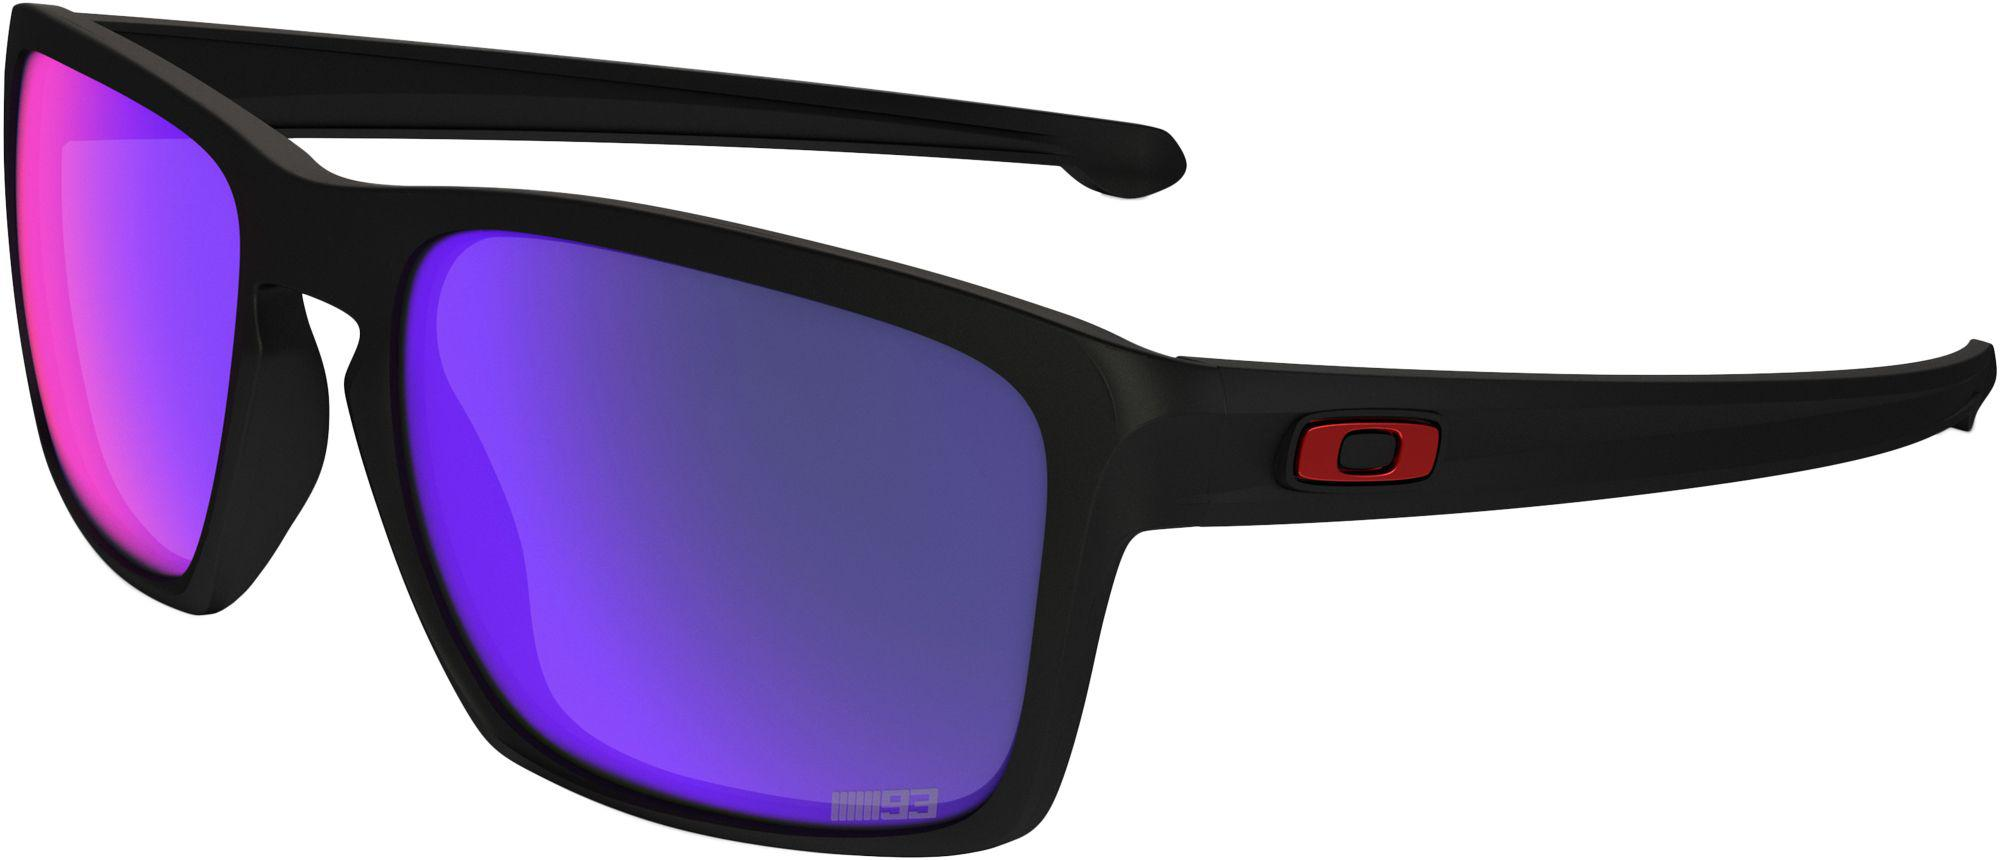 7503445313f Lyst - Oakley Sliver Marc Marquez Signature Edition Sunglasses in ...